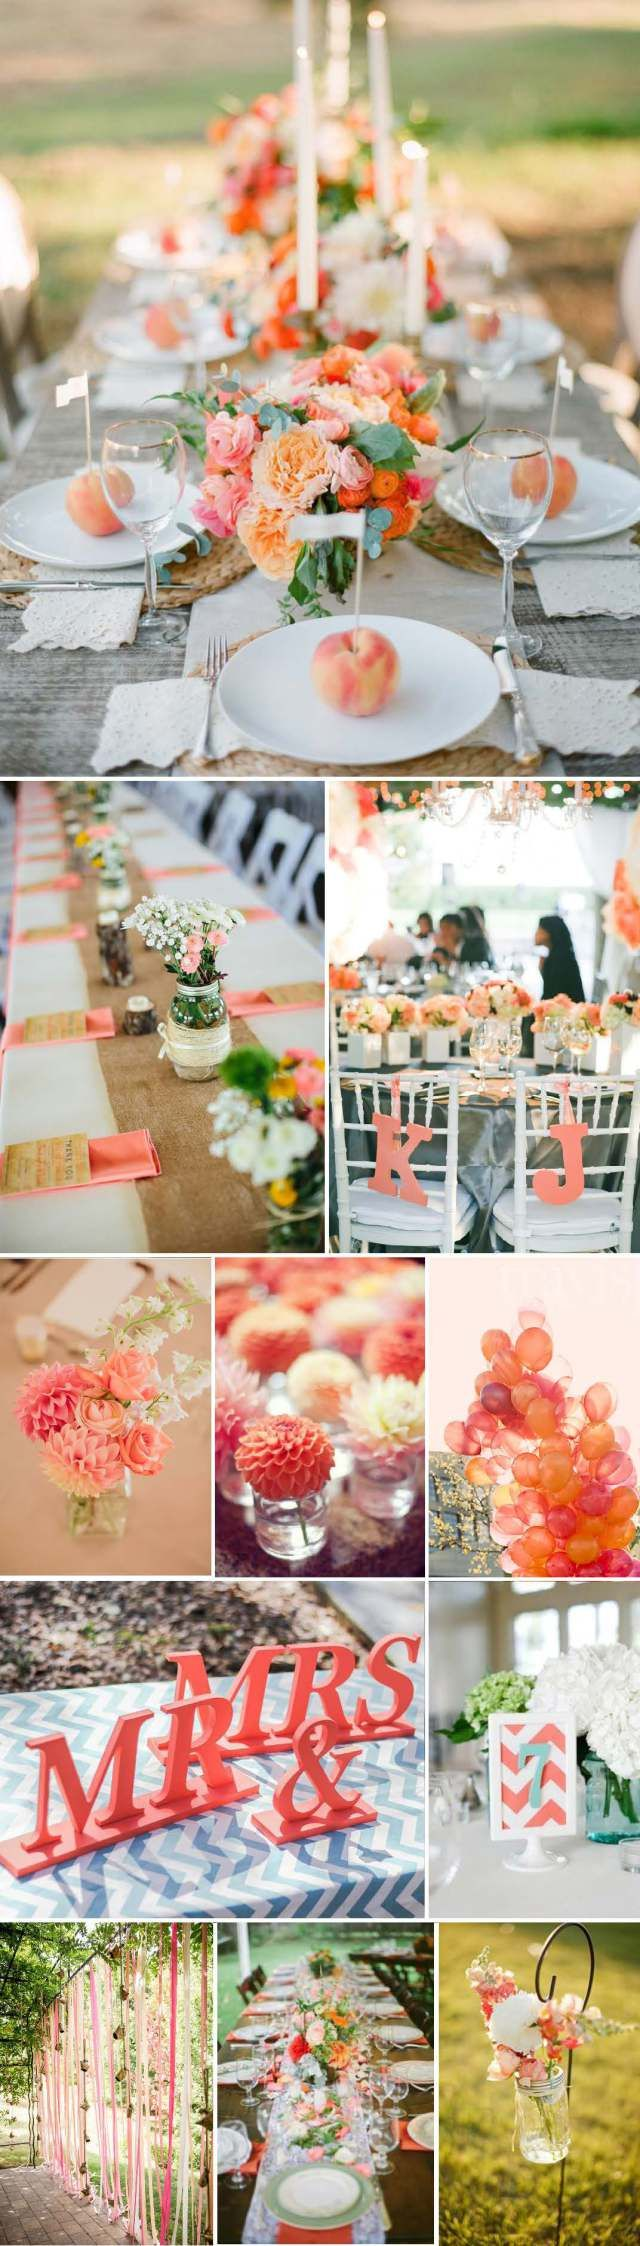 170 best Heiraten images on Pinterest | Perfect wedding, Table ...